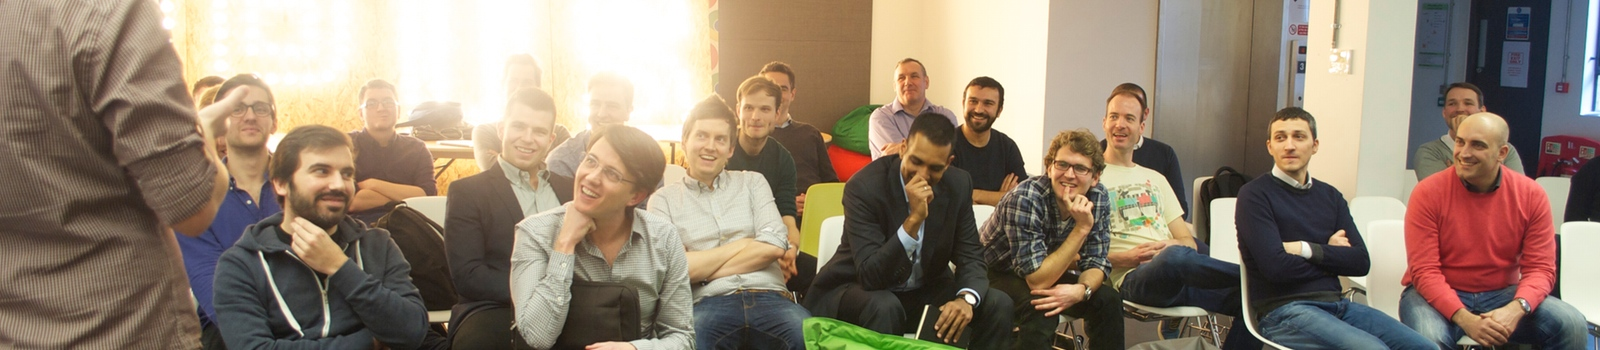 Seedcamp Family Grows to Over 150 as 11 New Startups Join